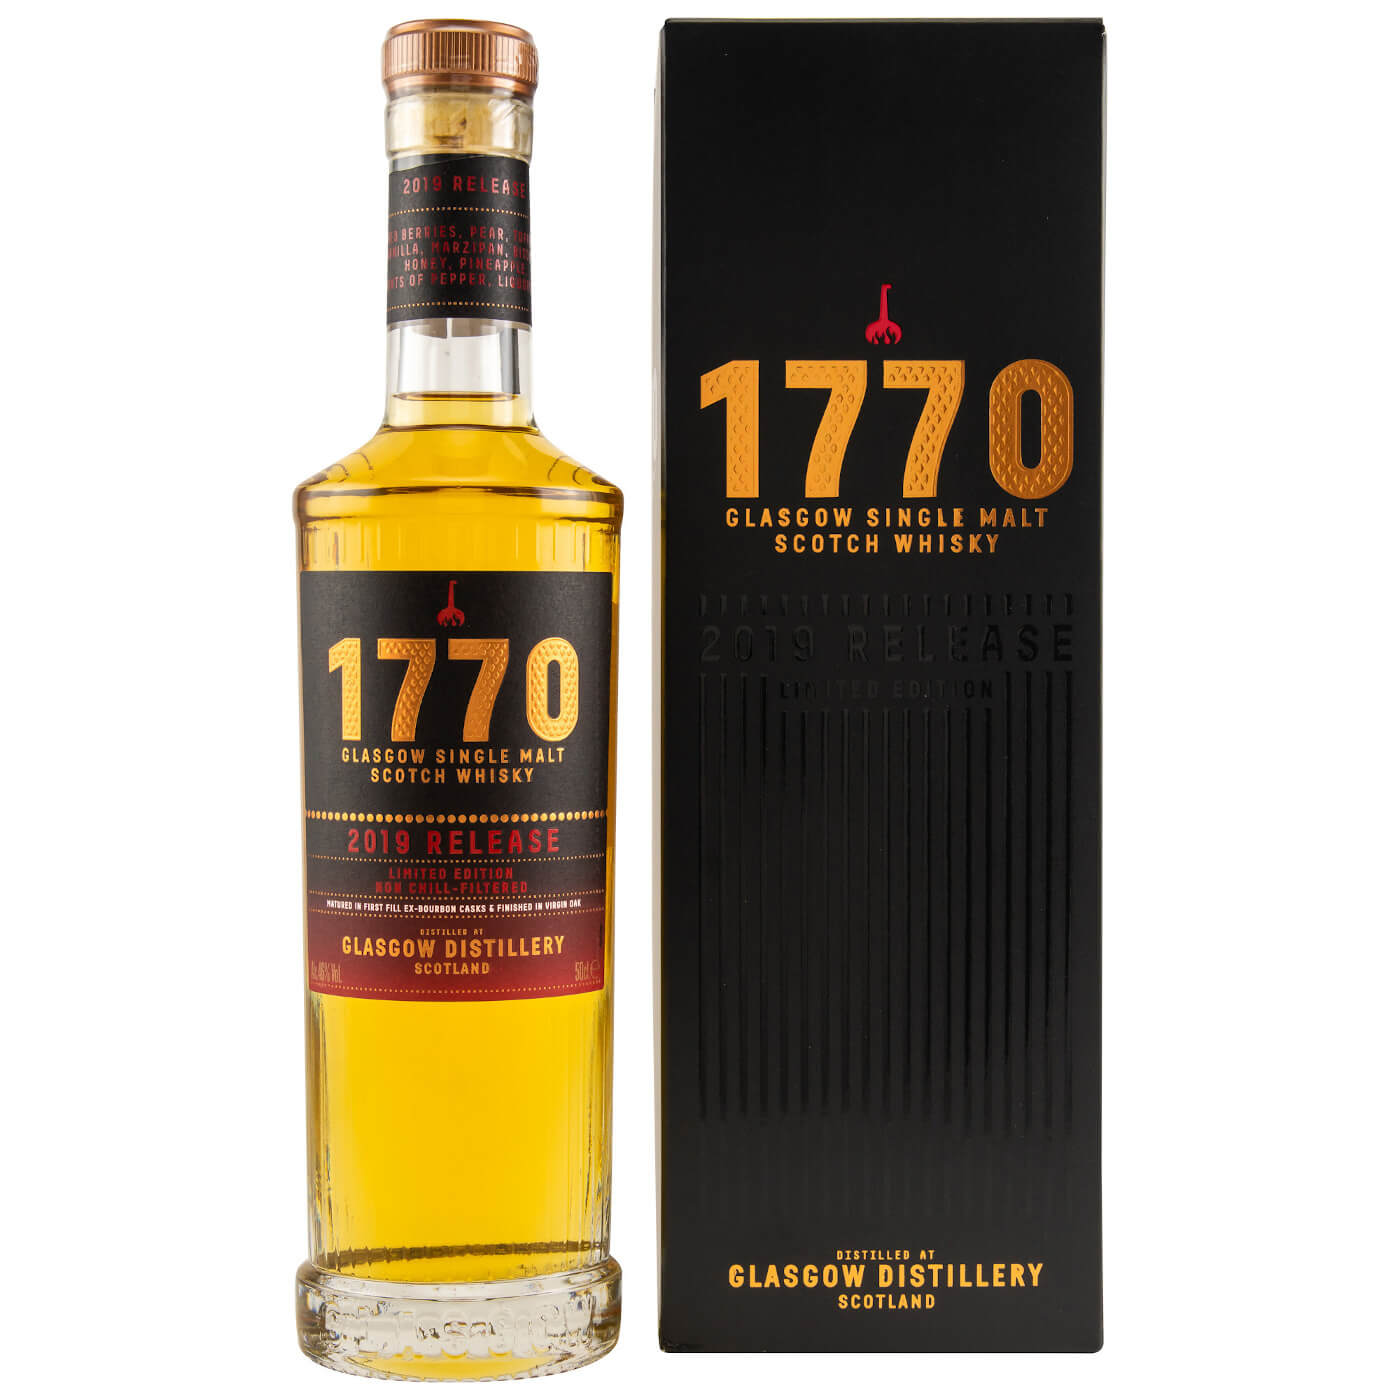 1770 Glasgow Distillery schottischer Whisky